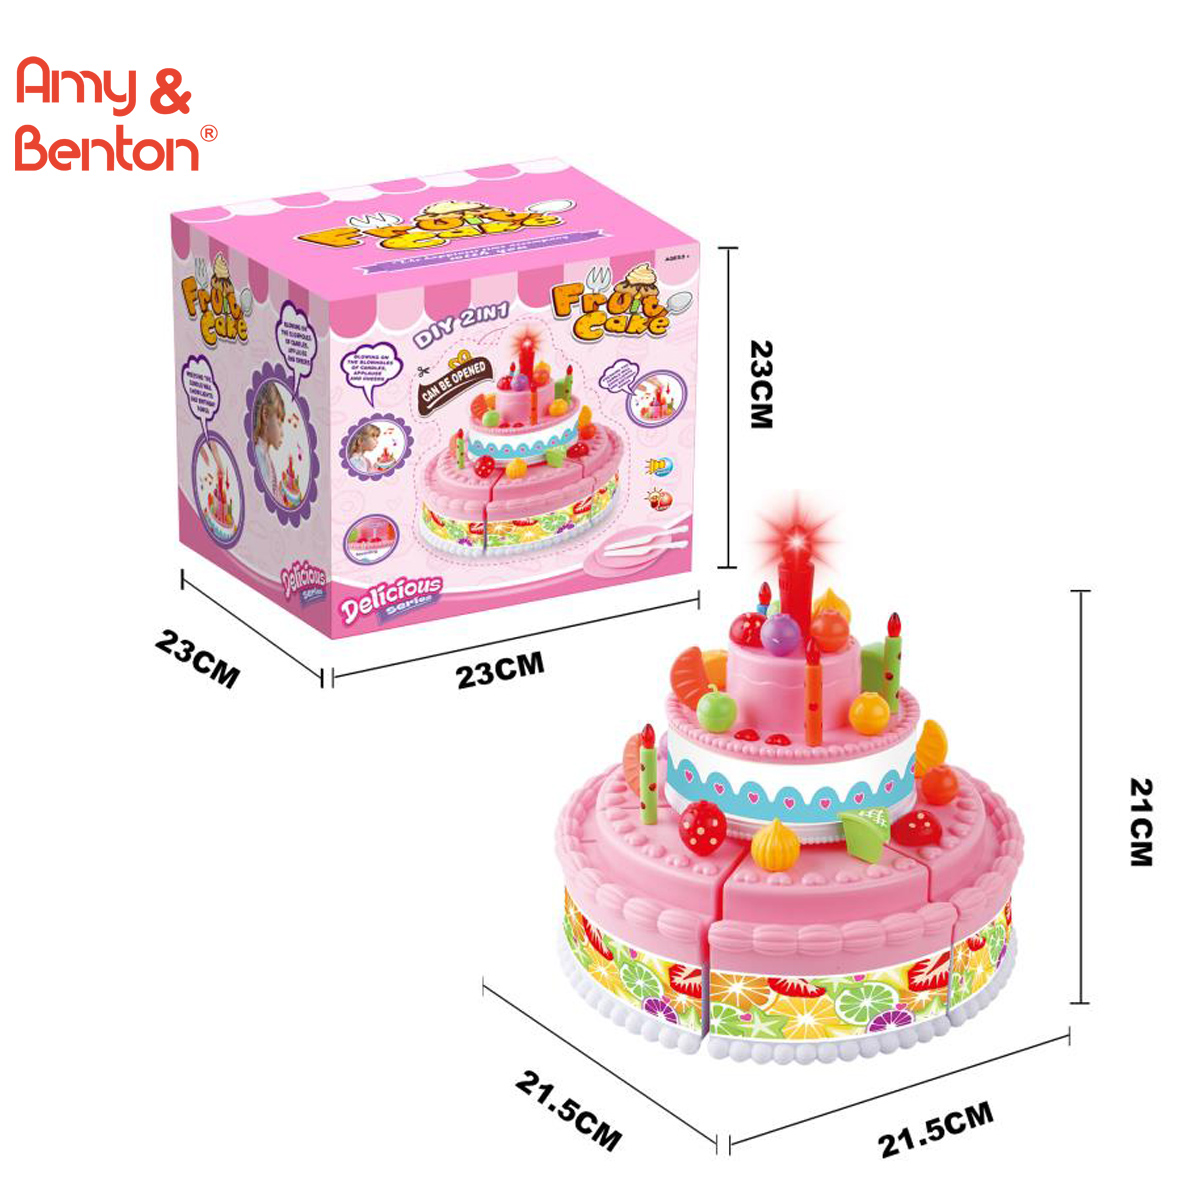 Remarkable Kids Birthday Cake Toy For Baby Toddlers With Counting Candles Funny Birthday Cards Online Drosicarndamsfinfo